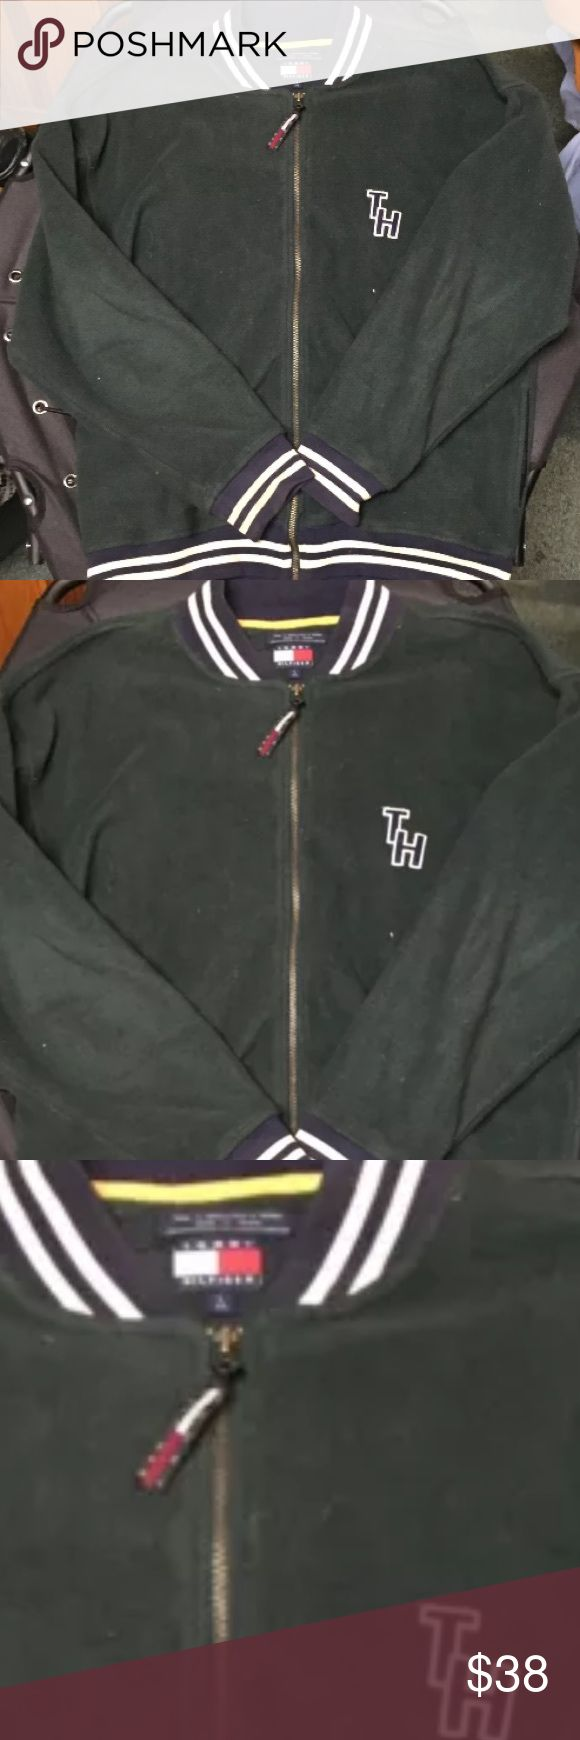 Tommy Hilfiger Fleece Bomber Jacket Late 1990's Tommy Hilfiger Fleece Bomber Jacket Late 1990's. Street style, hunter green and navy detail. Two pockets. Banded cuffs and bottom Vintage Jackets & Coats Bomber & Varsity